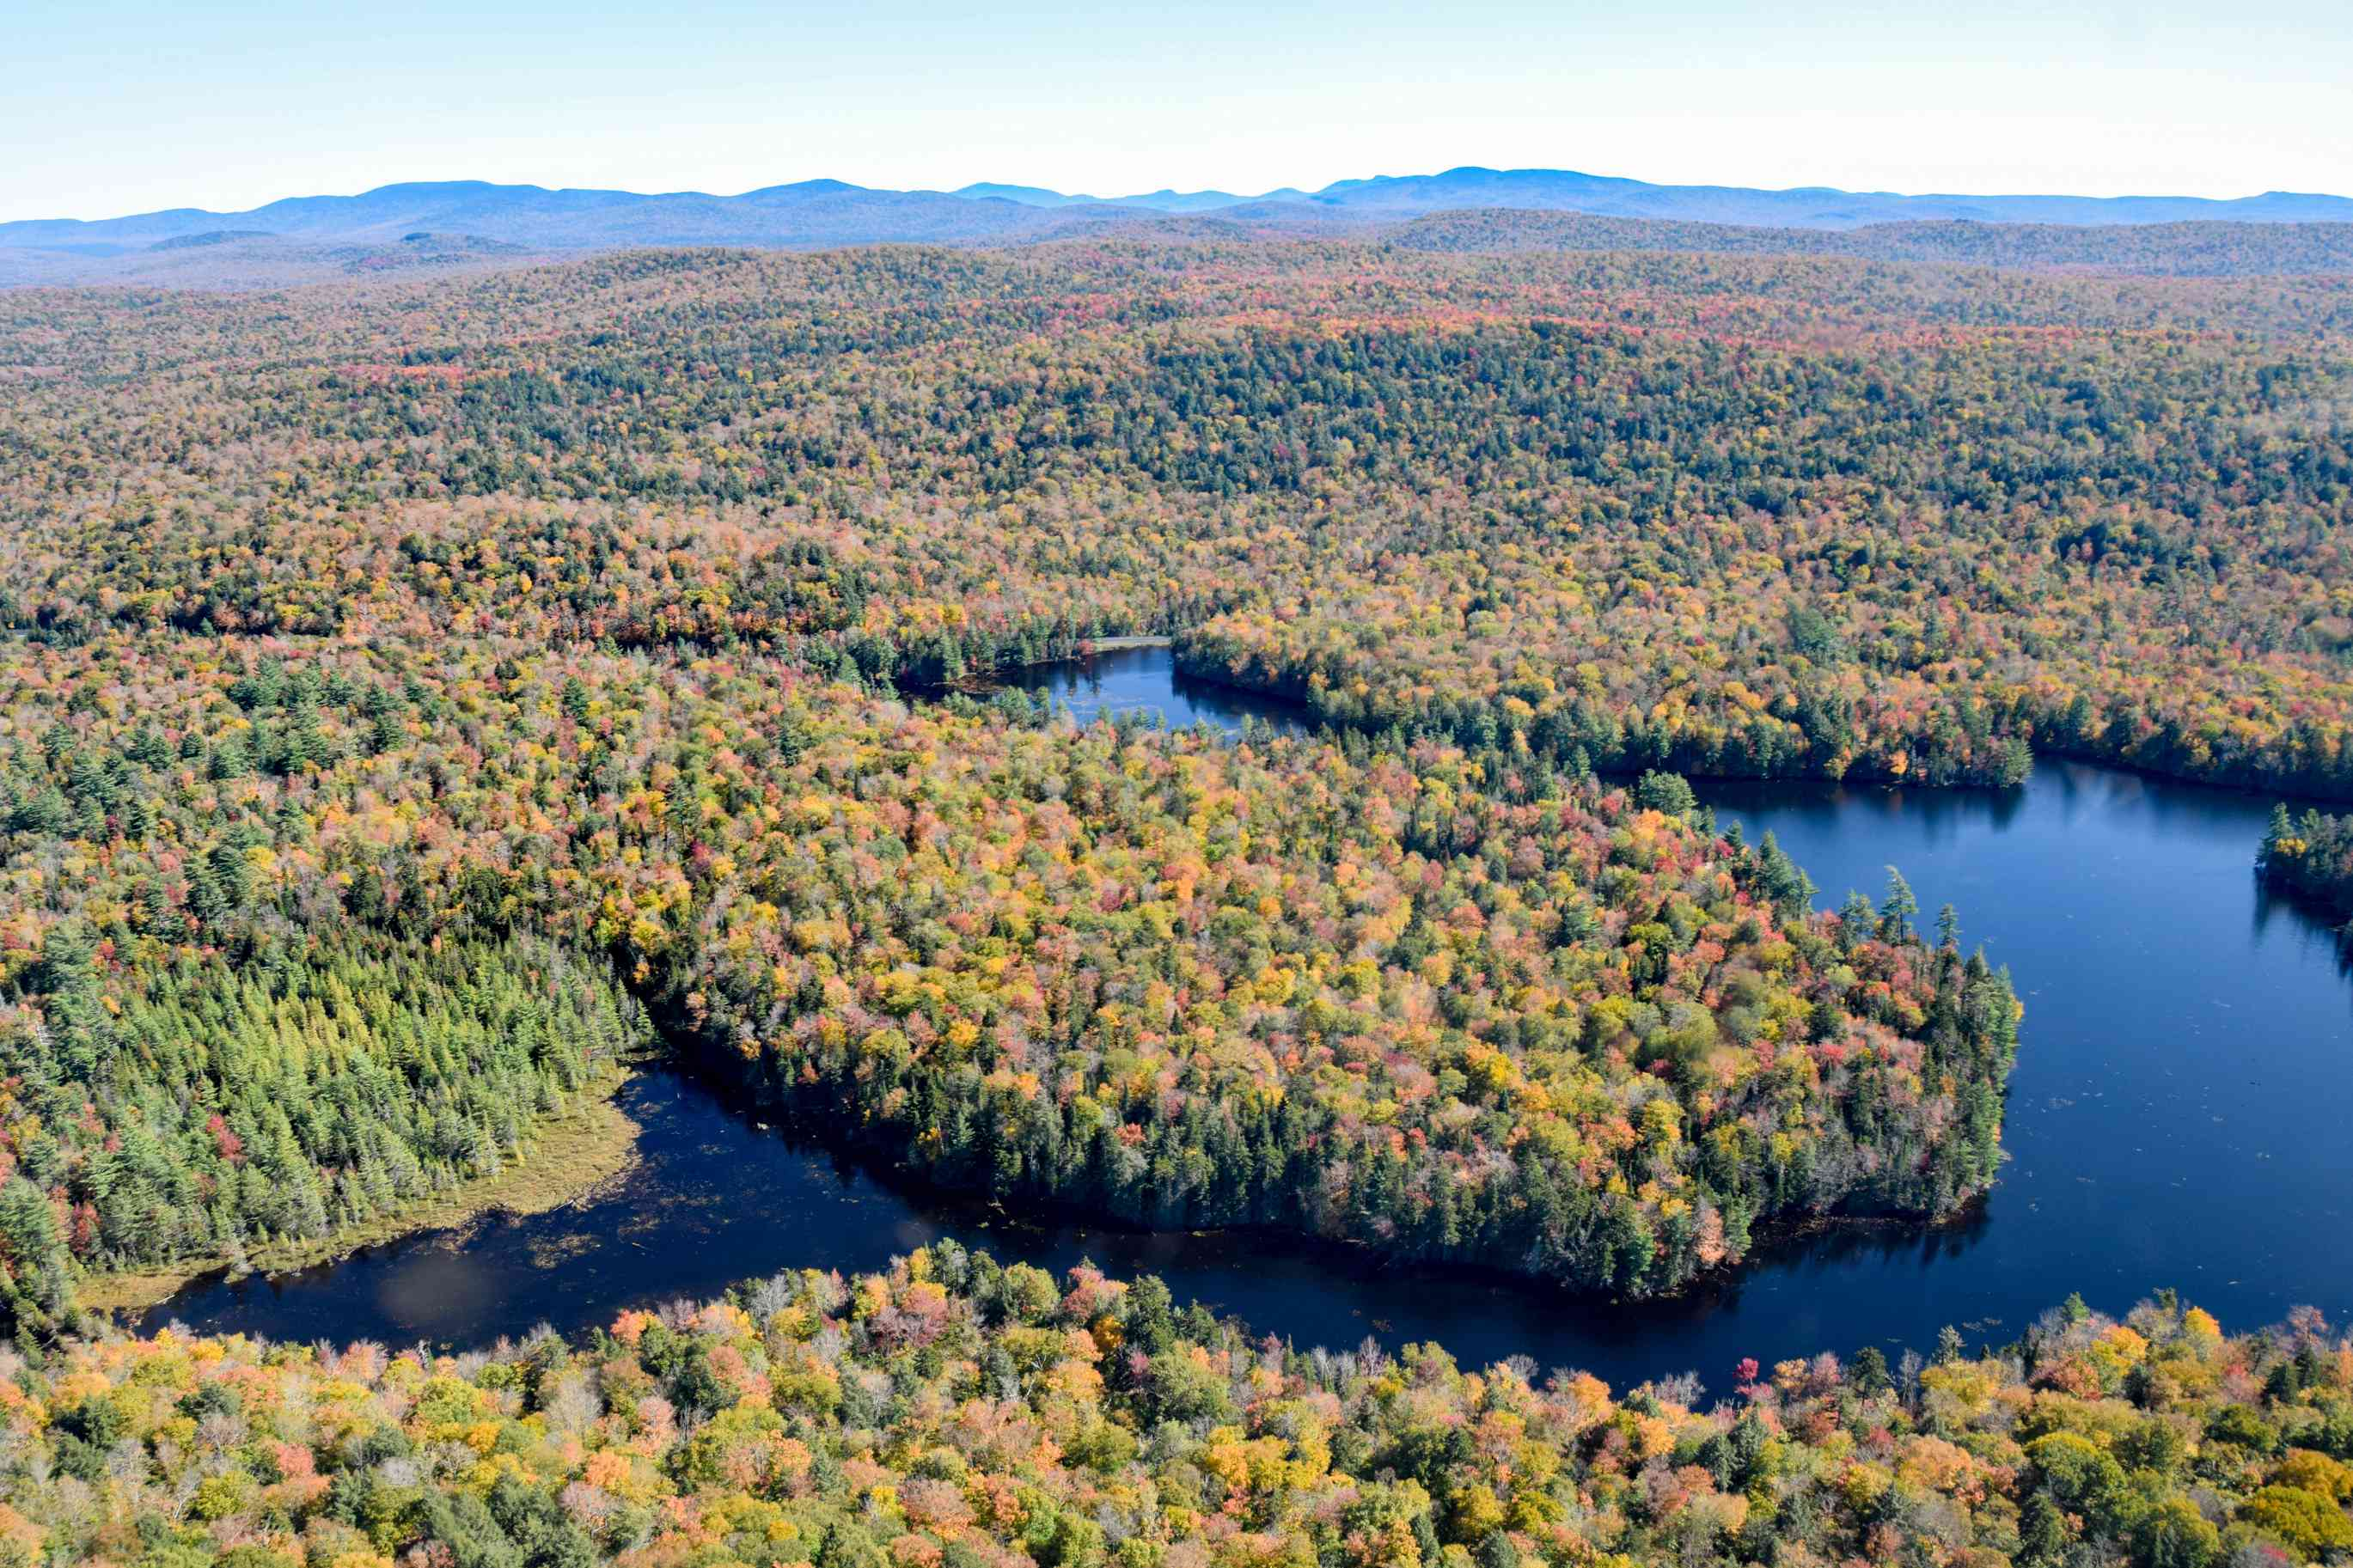 Aerial view of colorful fall foliage in the Adirondacks